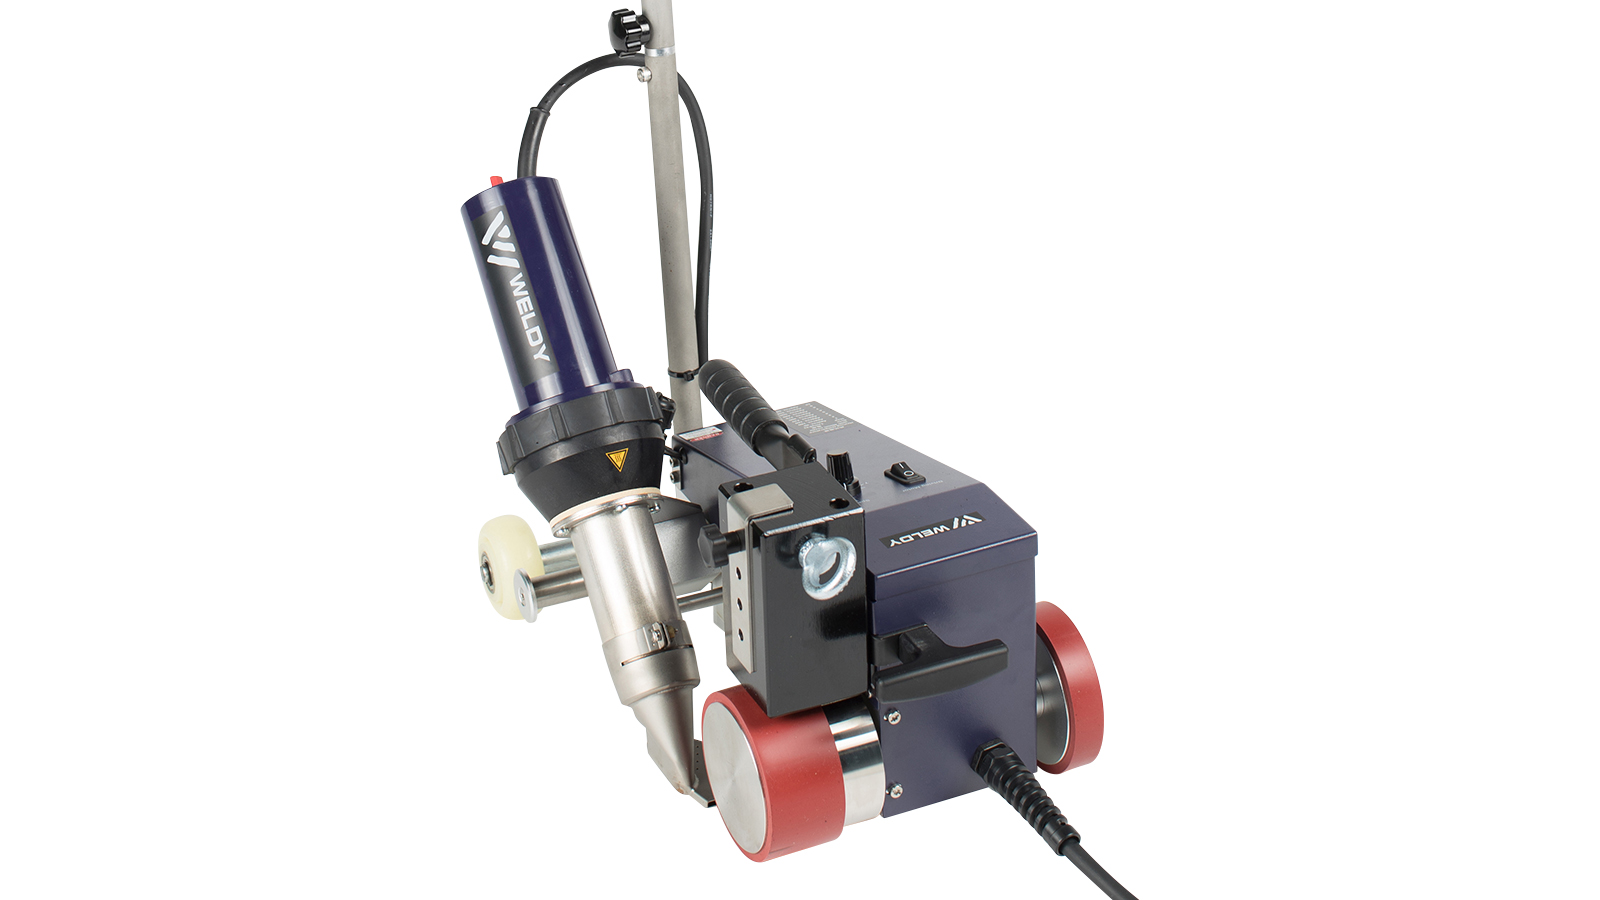 hot-air-welder RW 3400 Power welder